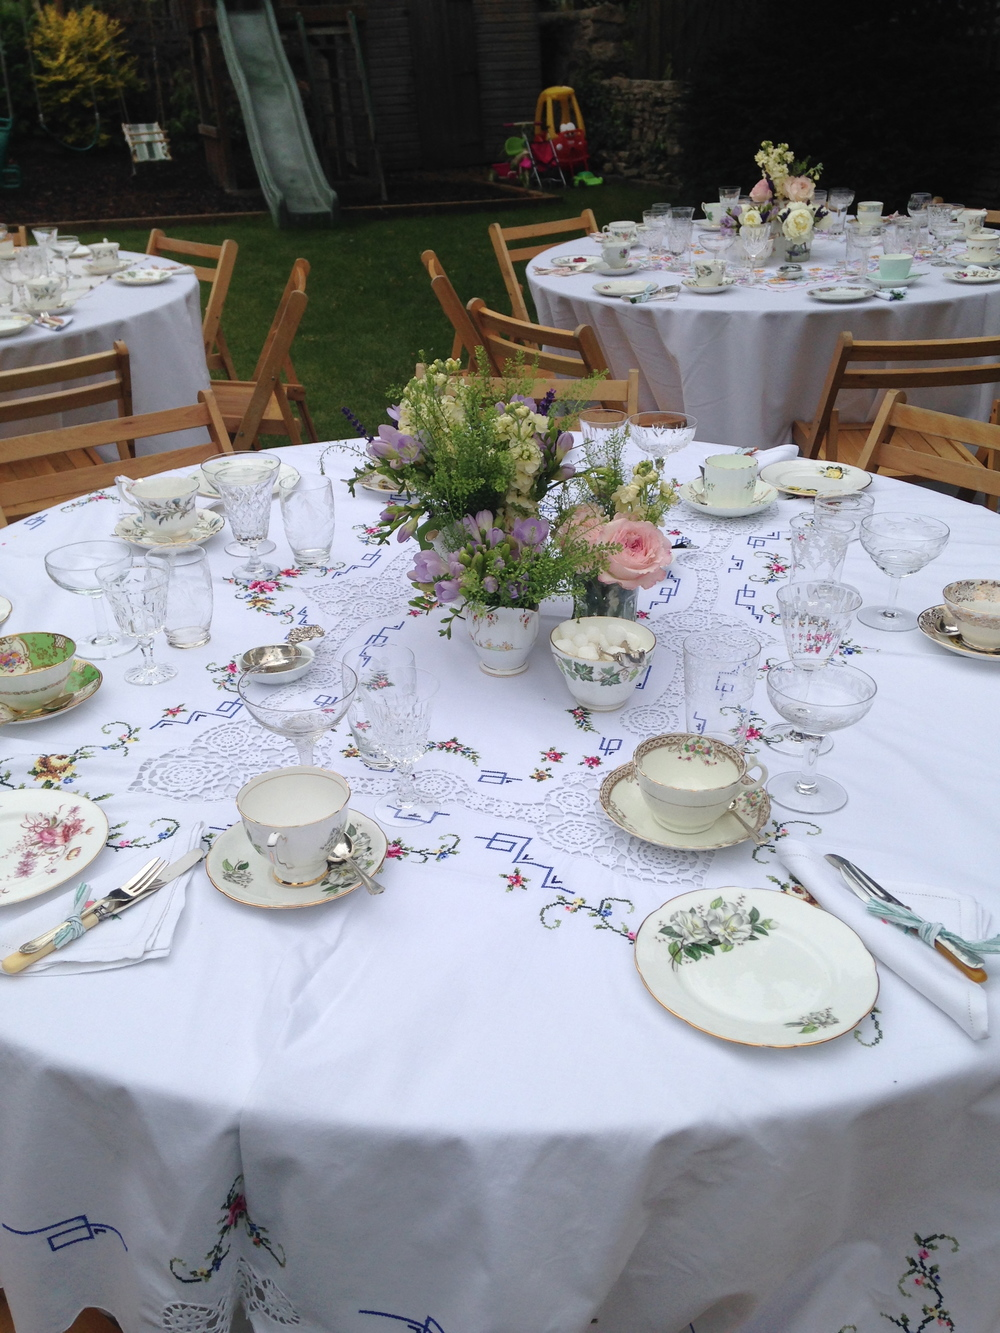 The perfect setting for a family Christening party